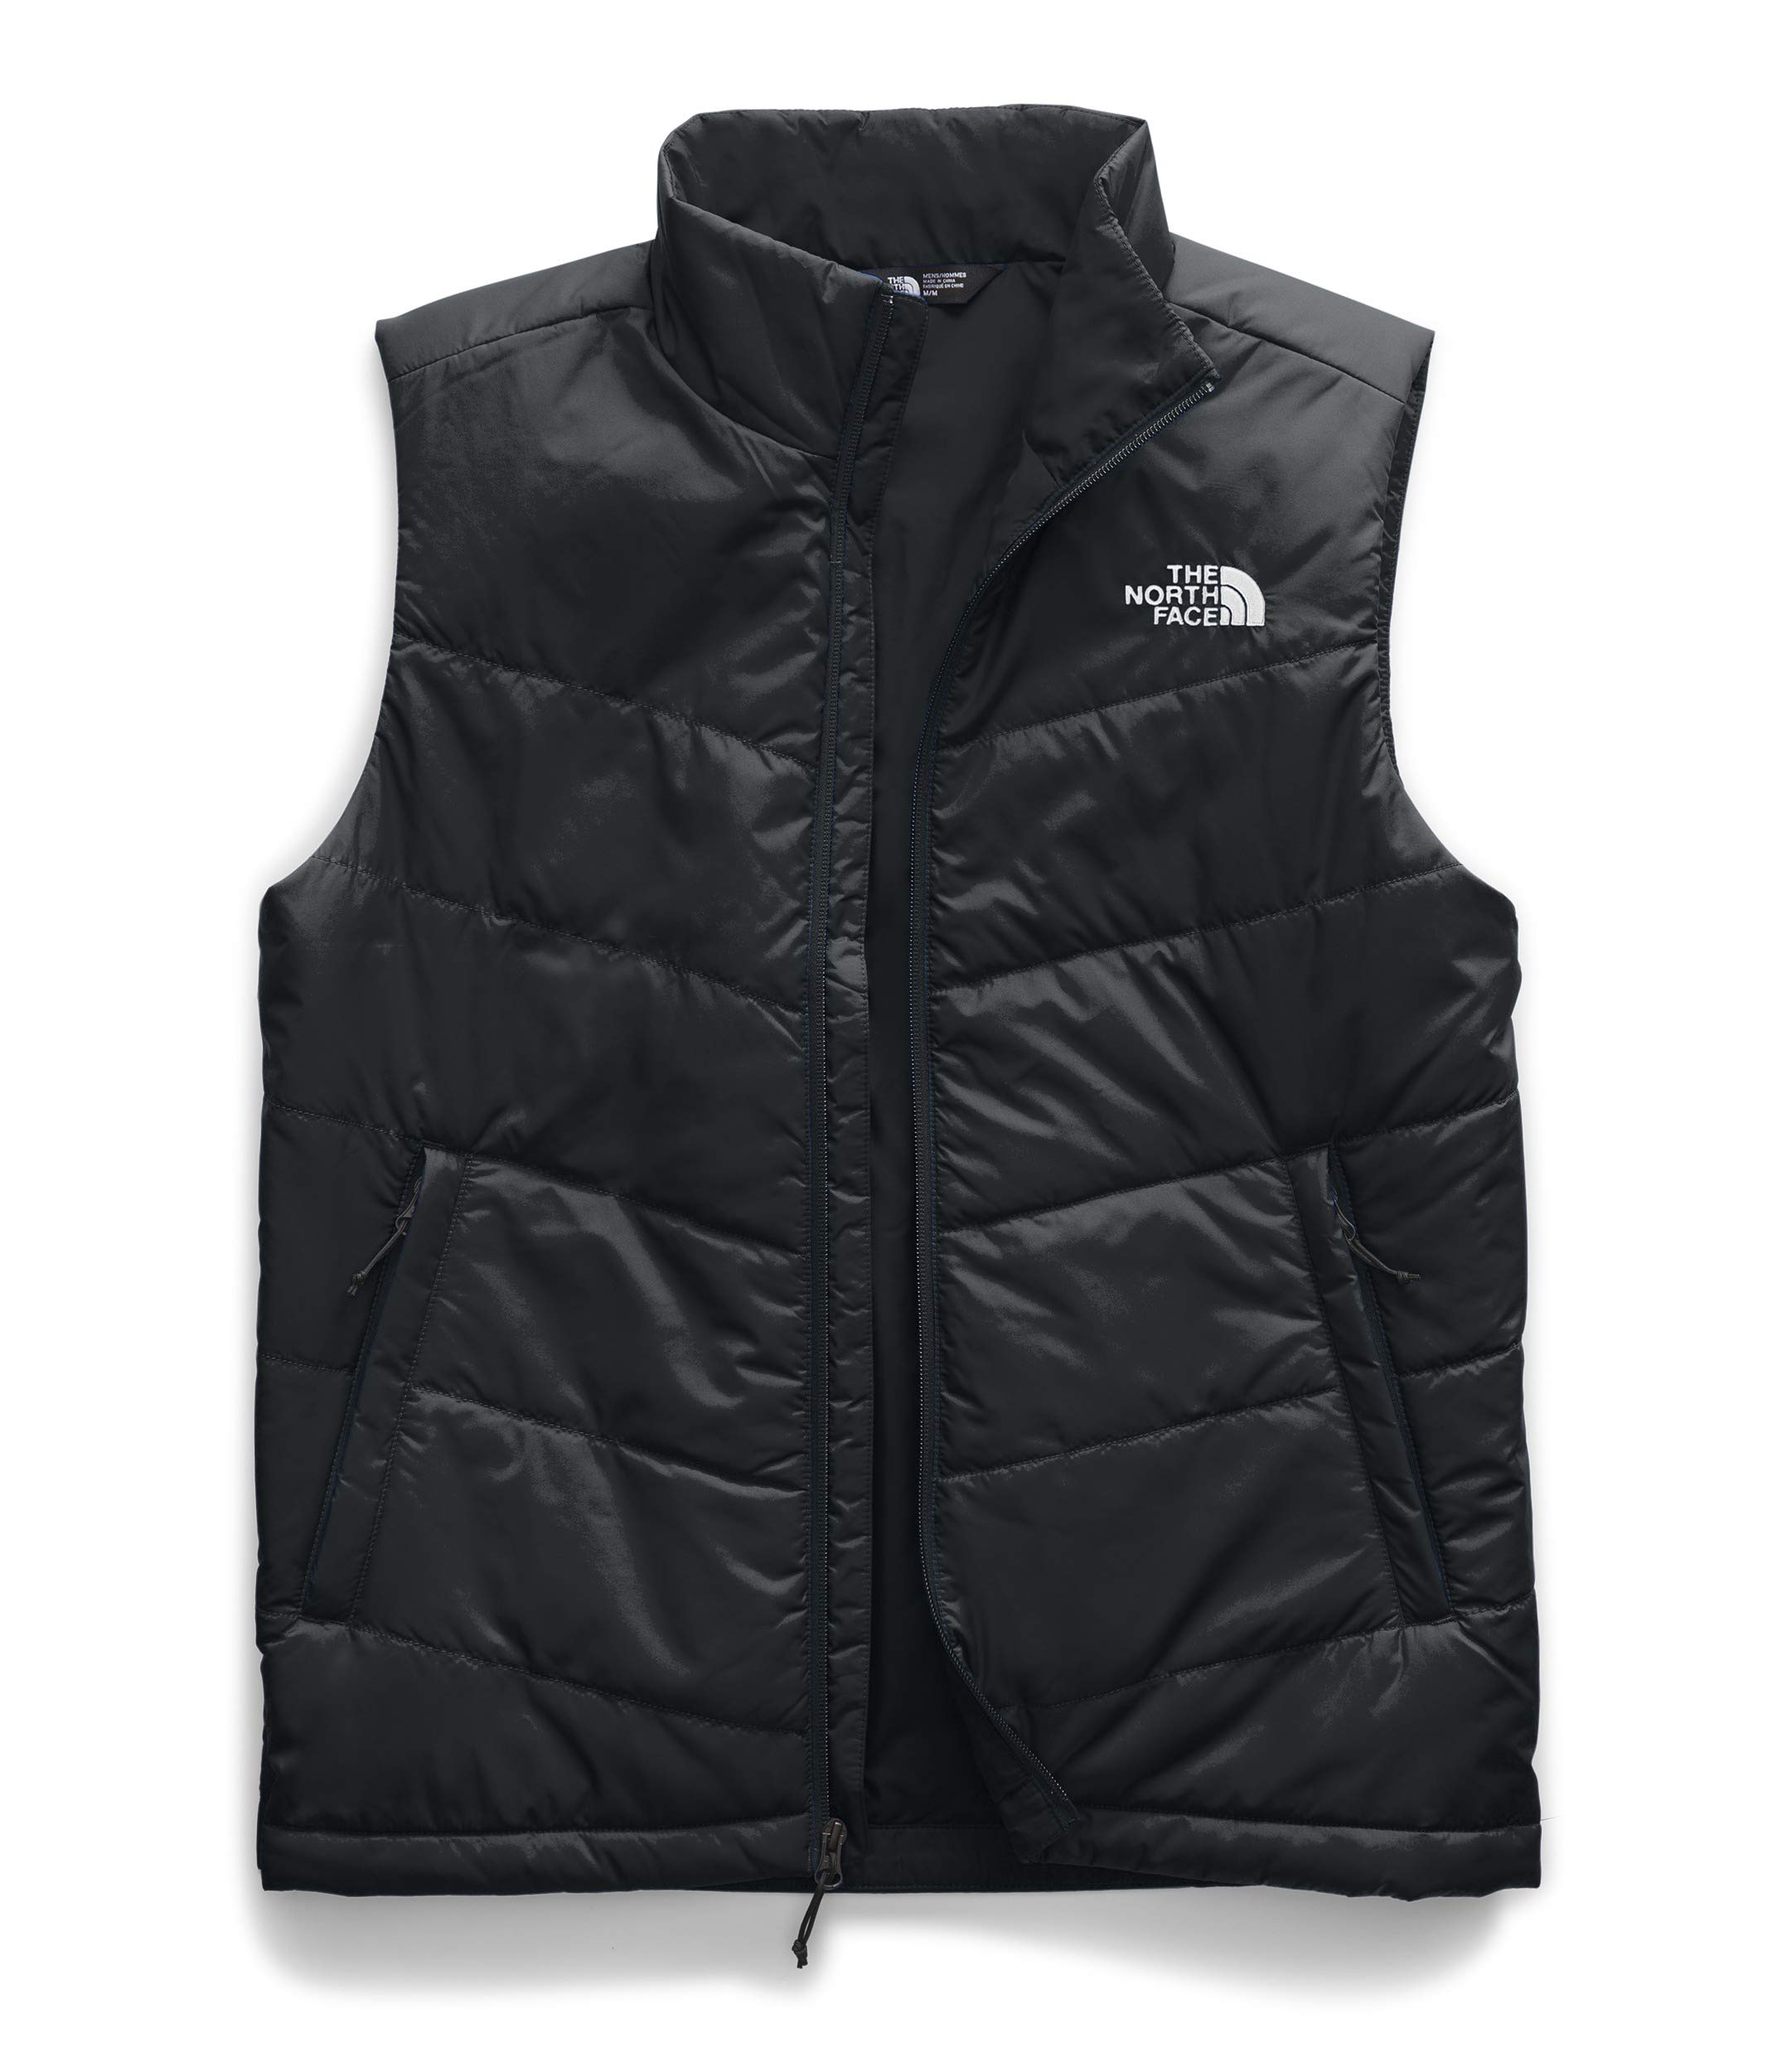 The North Face Men's Junction Insulated Vest by The North Face